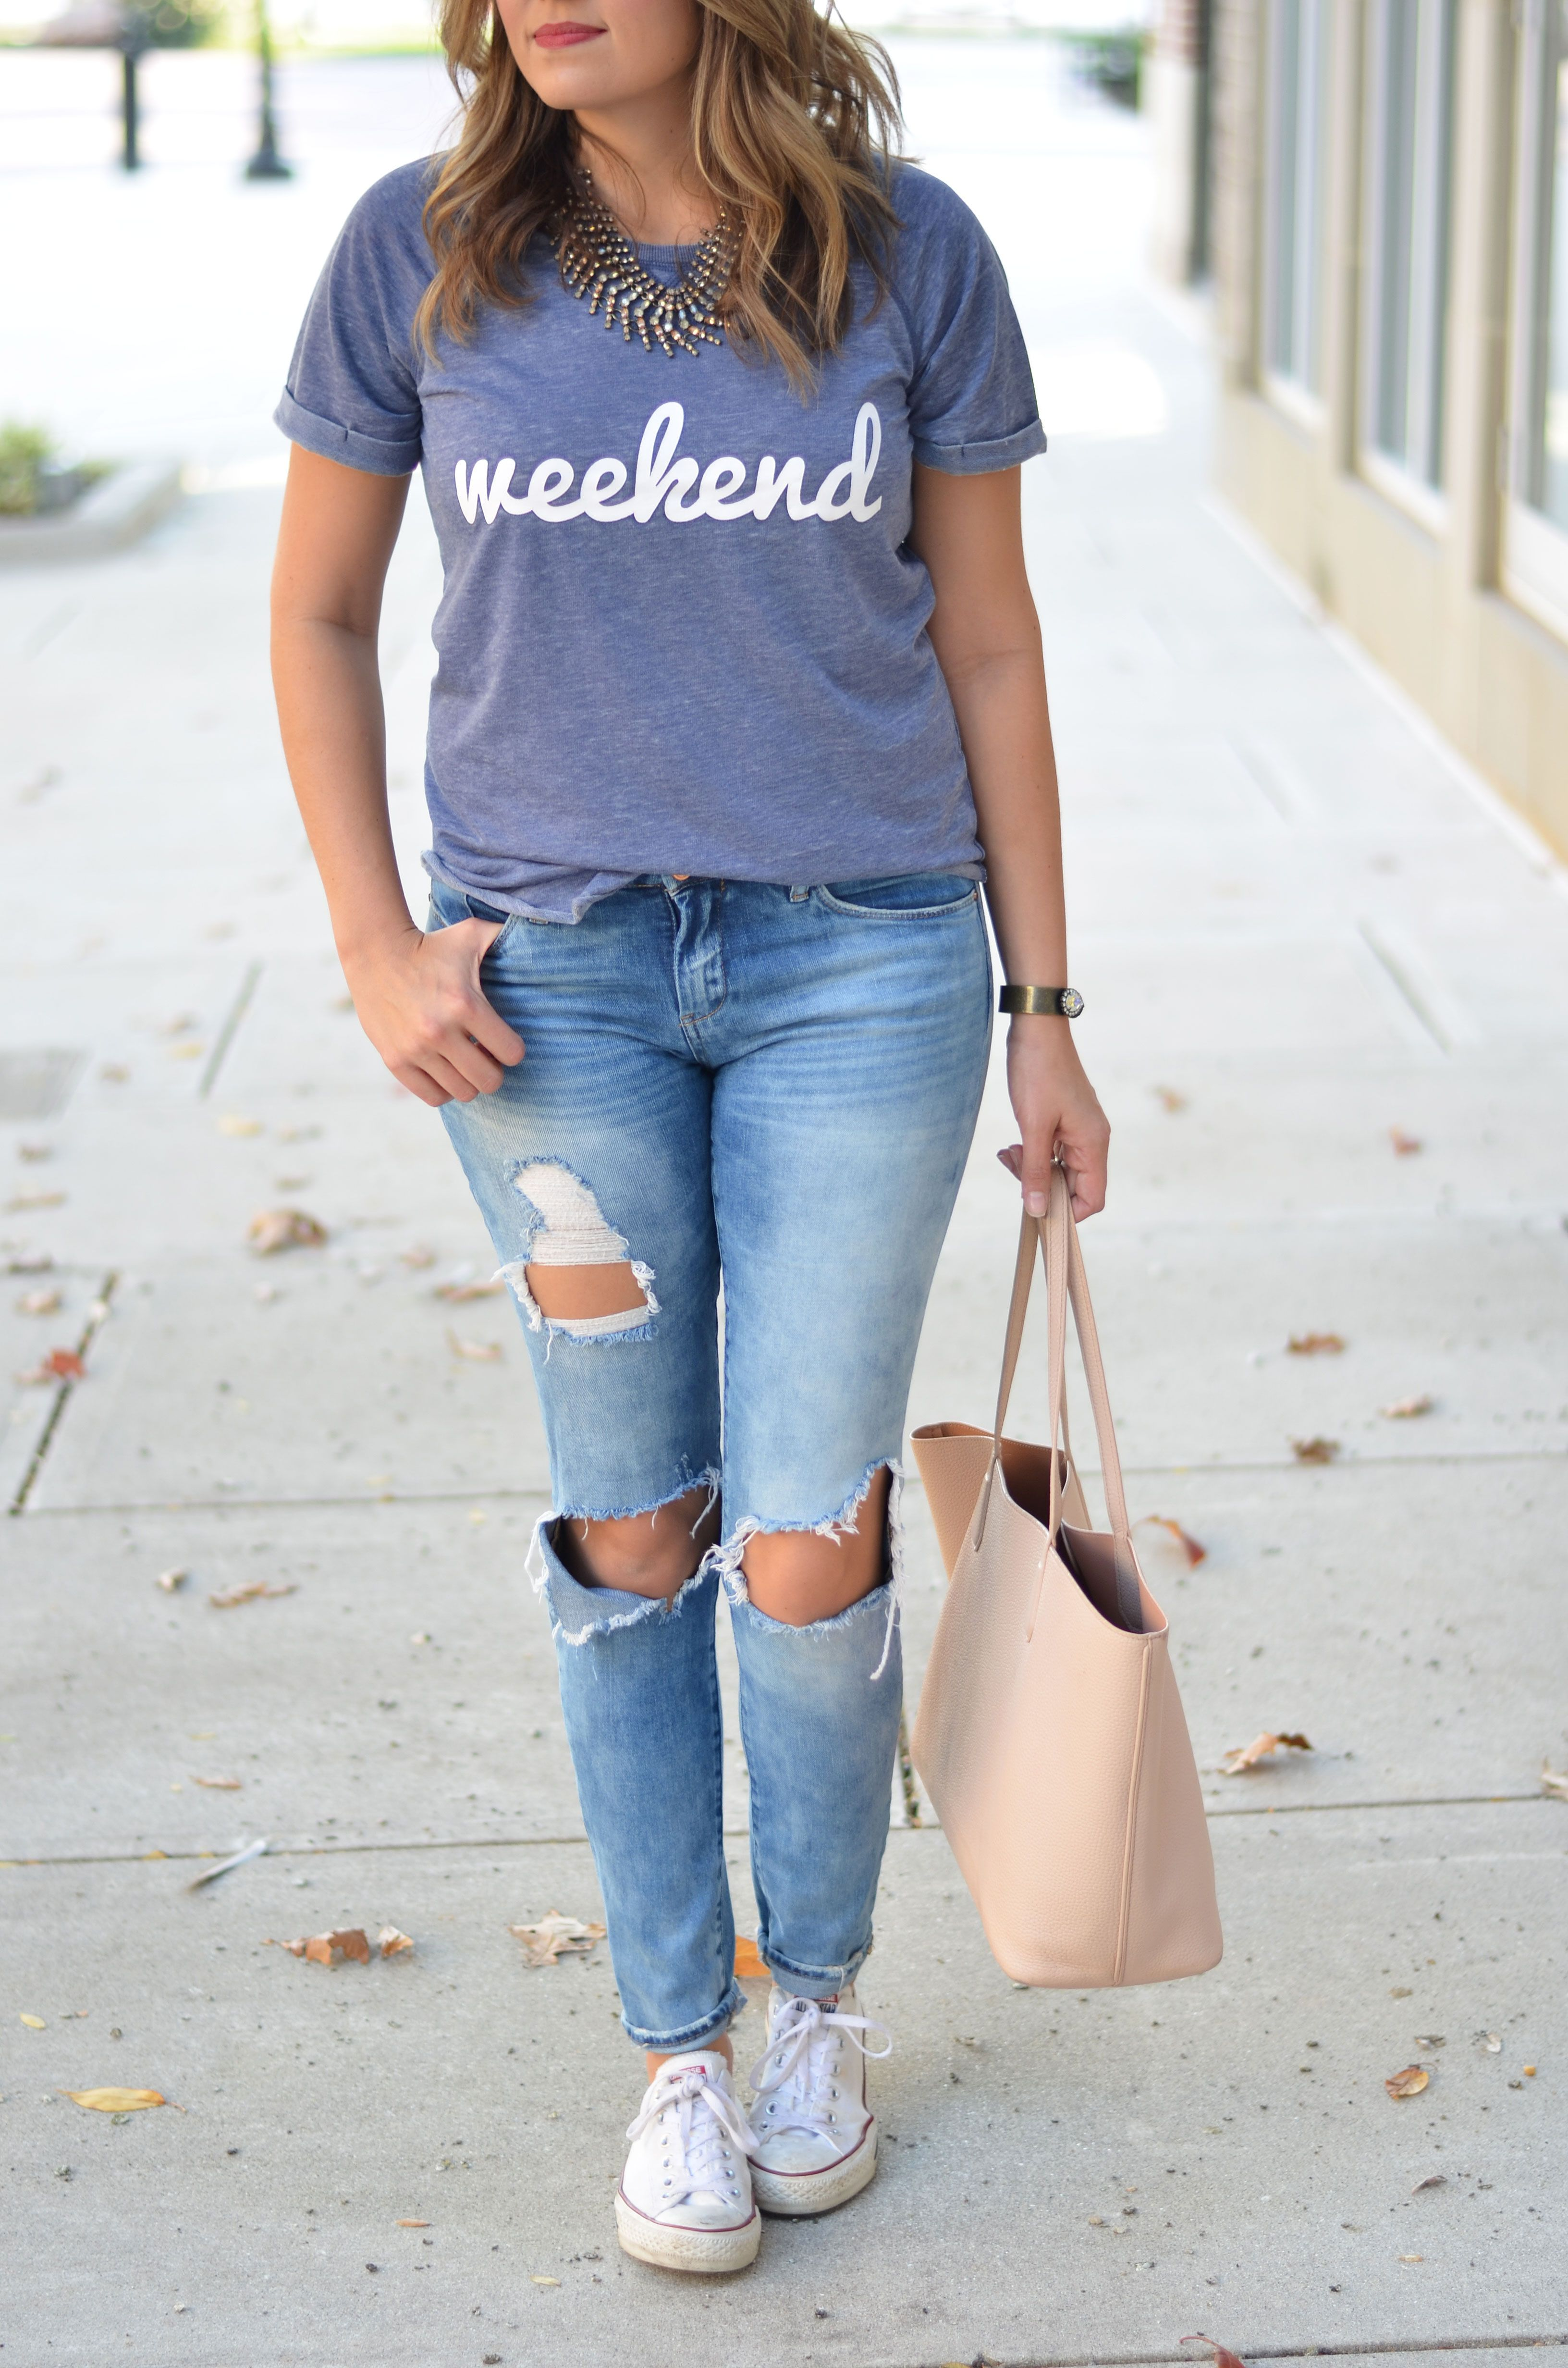 Weekend Graphic Tee Outfit With Images Graphic Tee Outfits